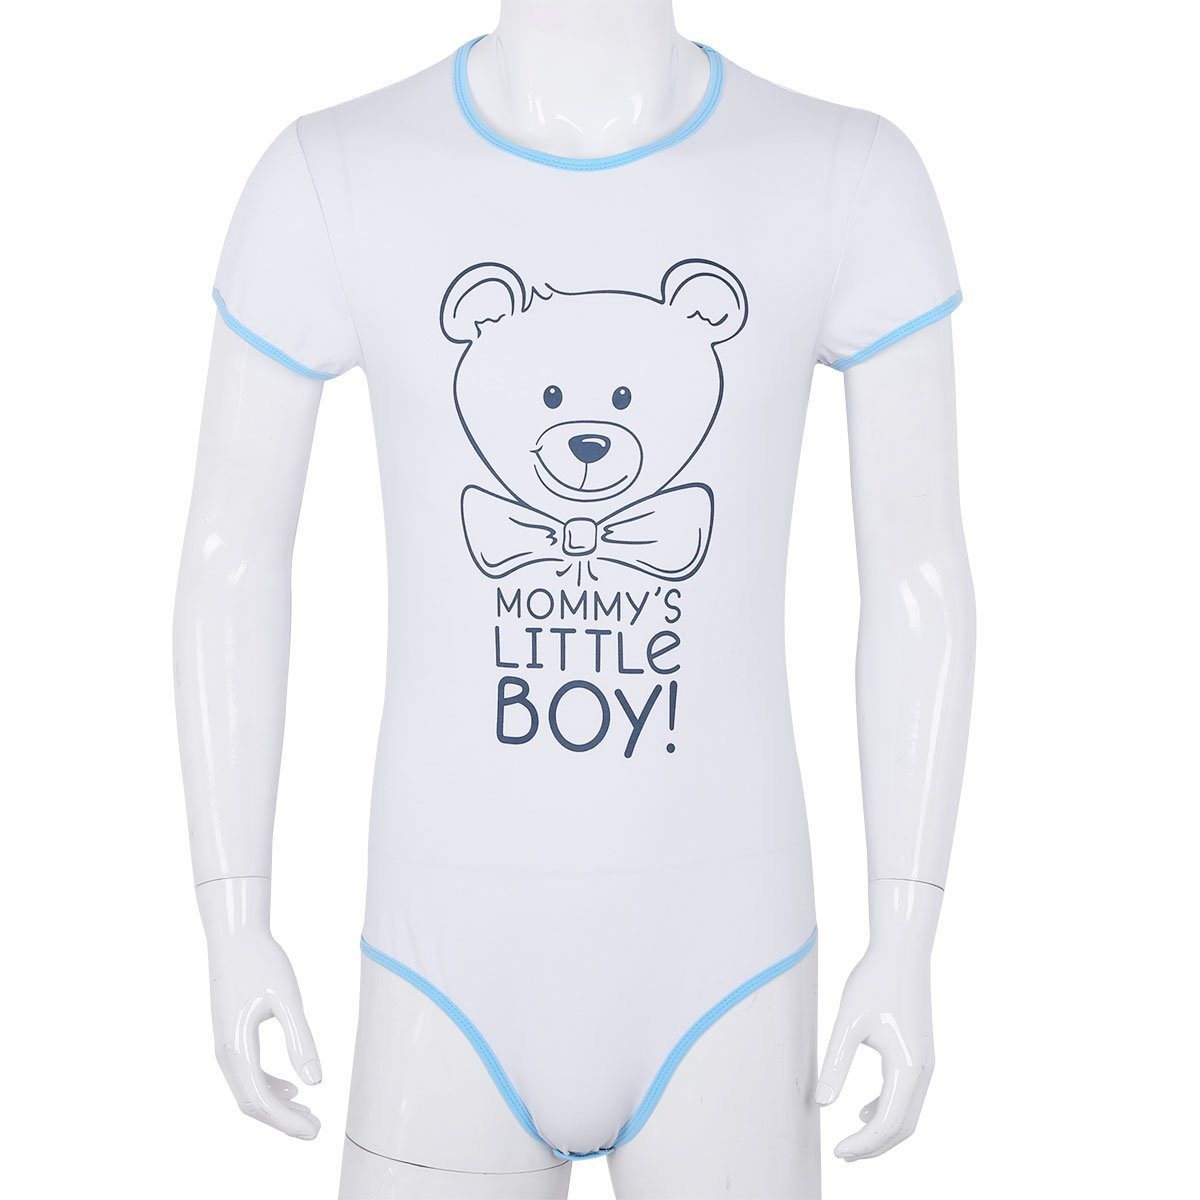 One Piece Adult Baby & Diaper Lover Onesie Sissy Panty Shop